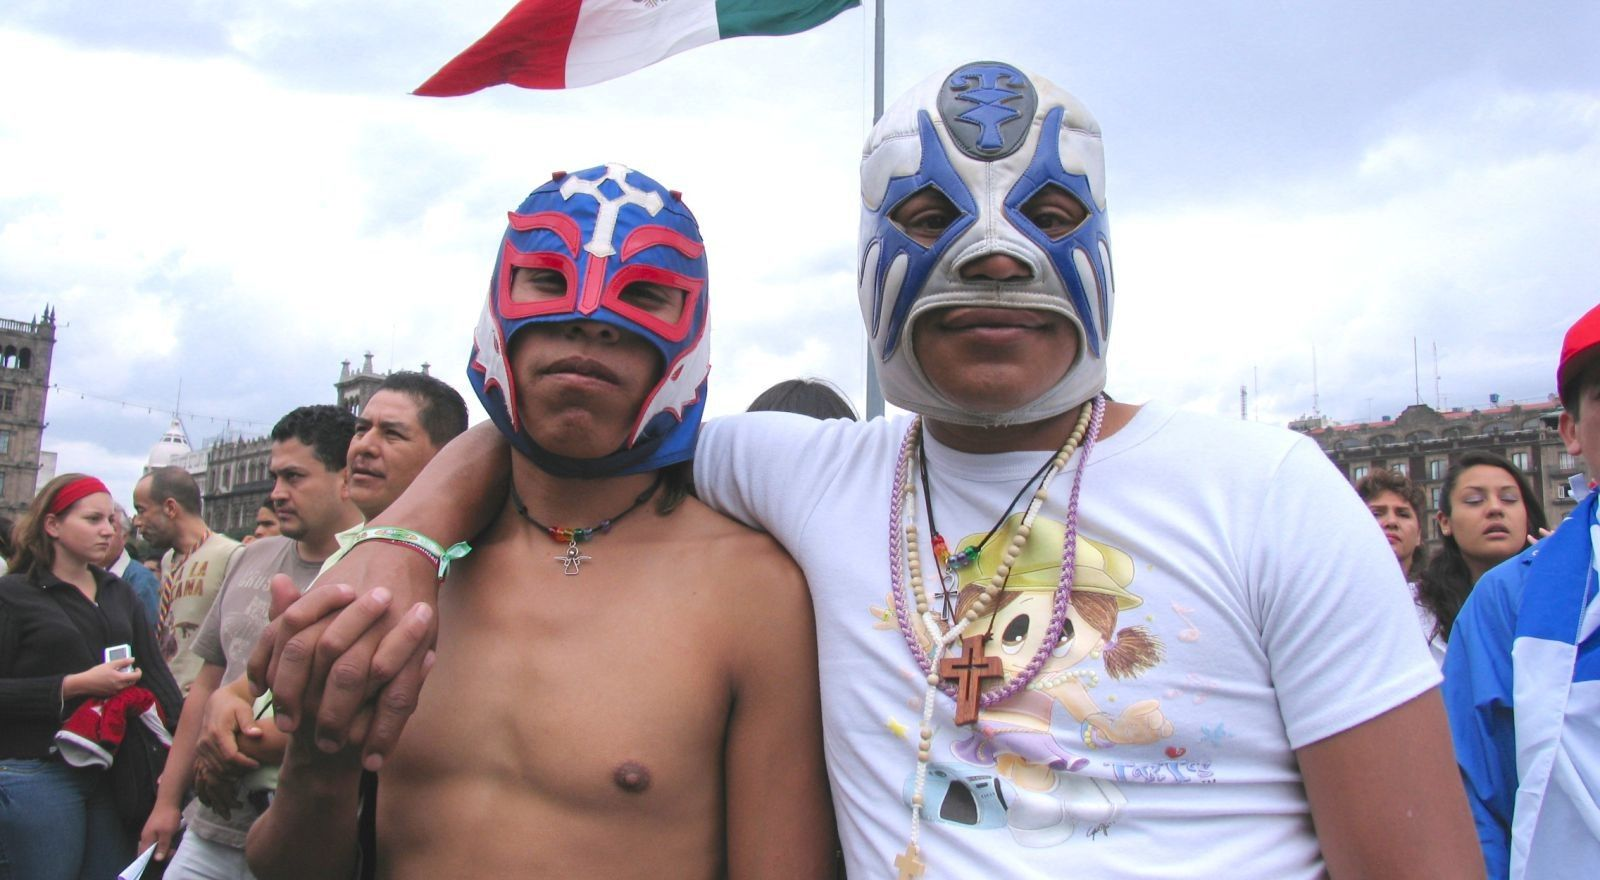 Mexican soccer fans are reluctant to give up a favorite chant — an anti